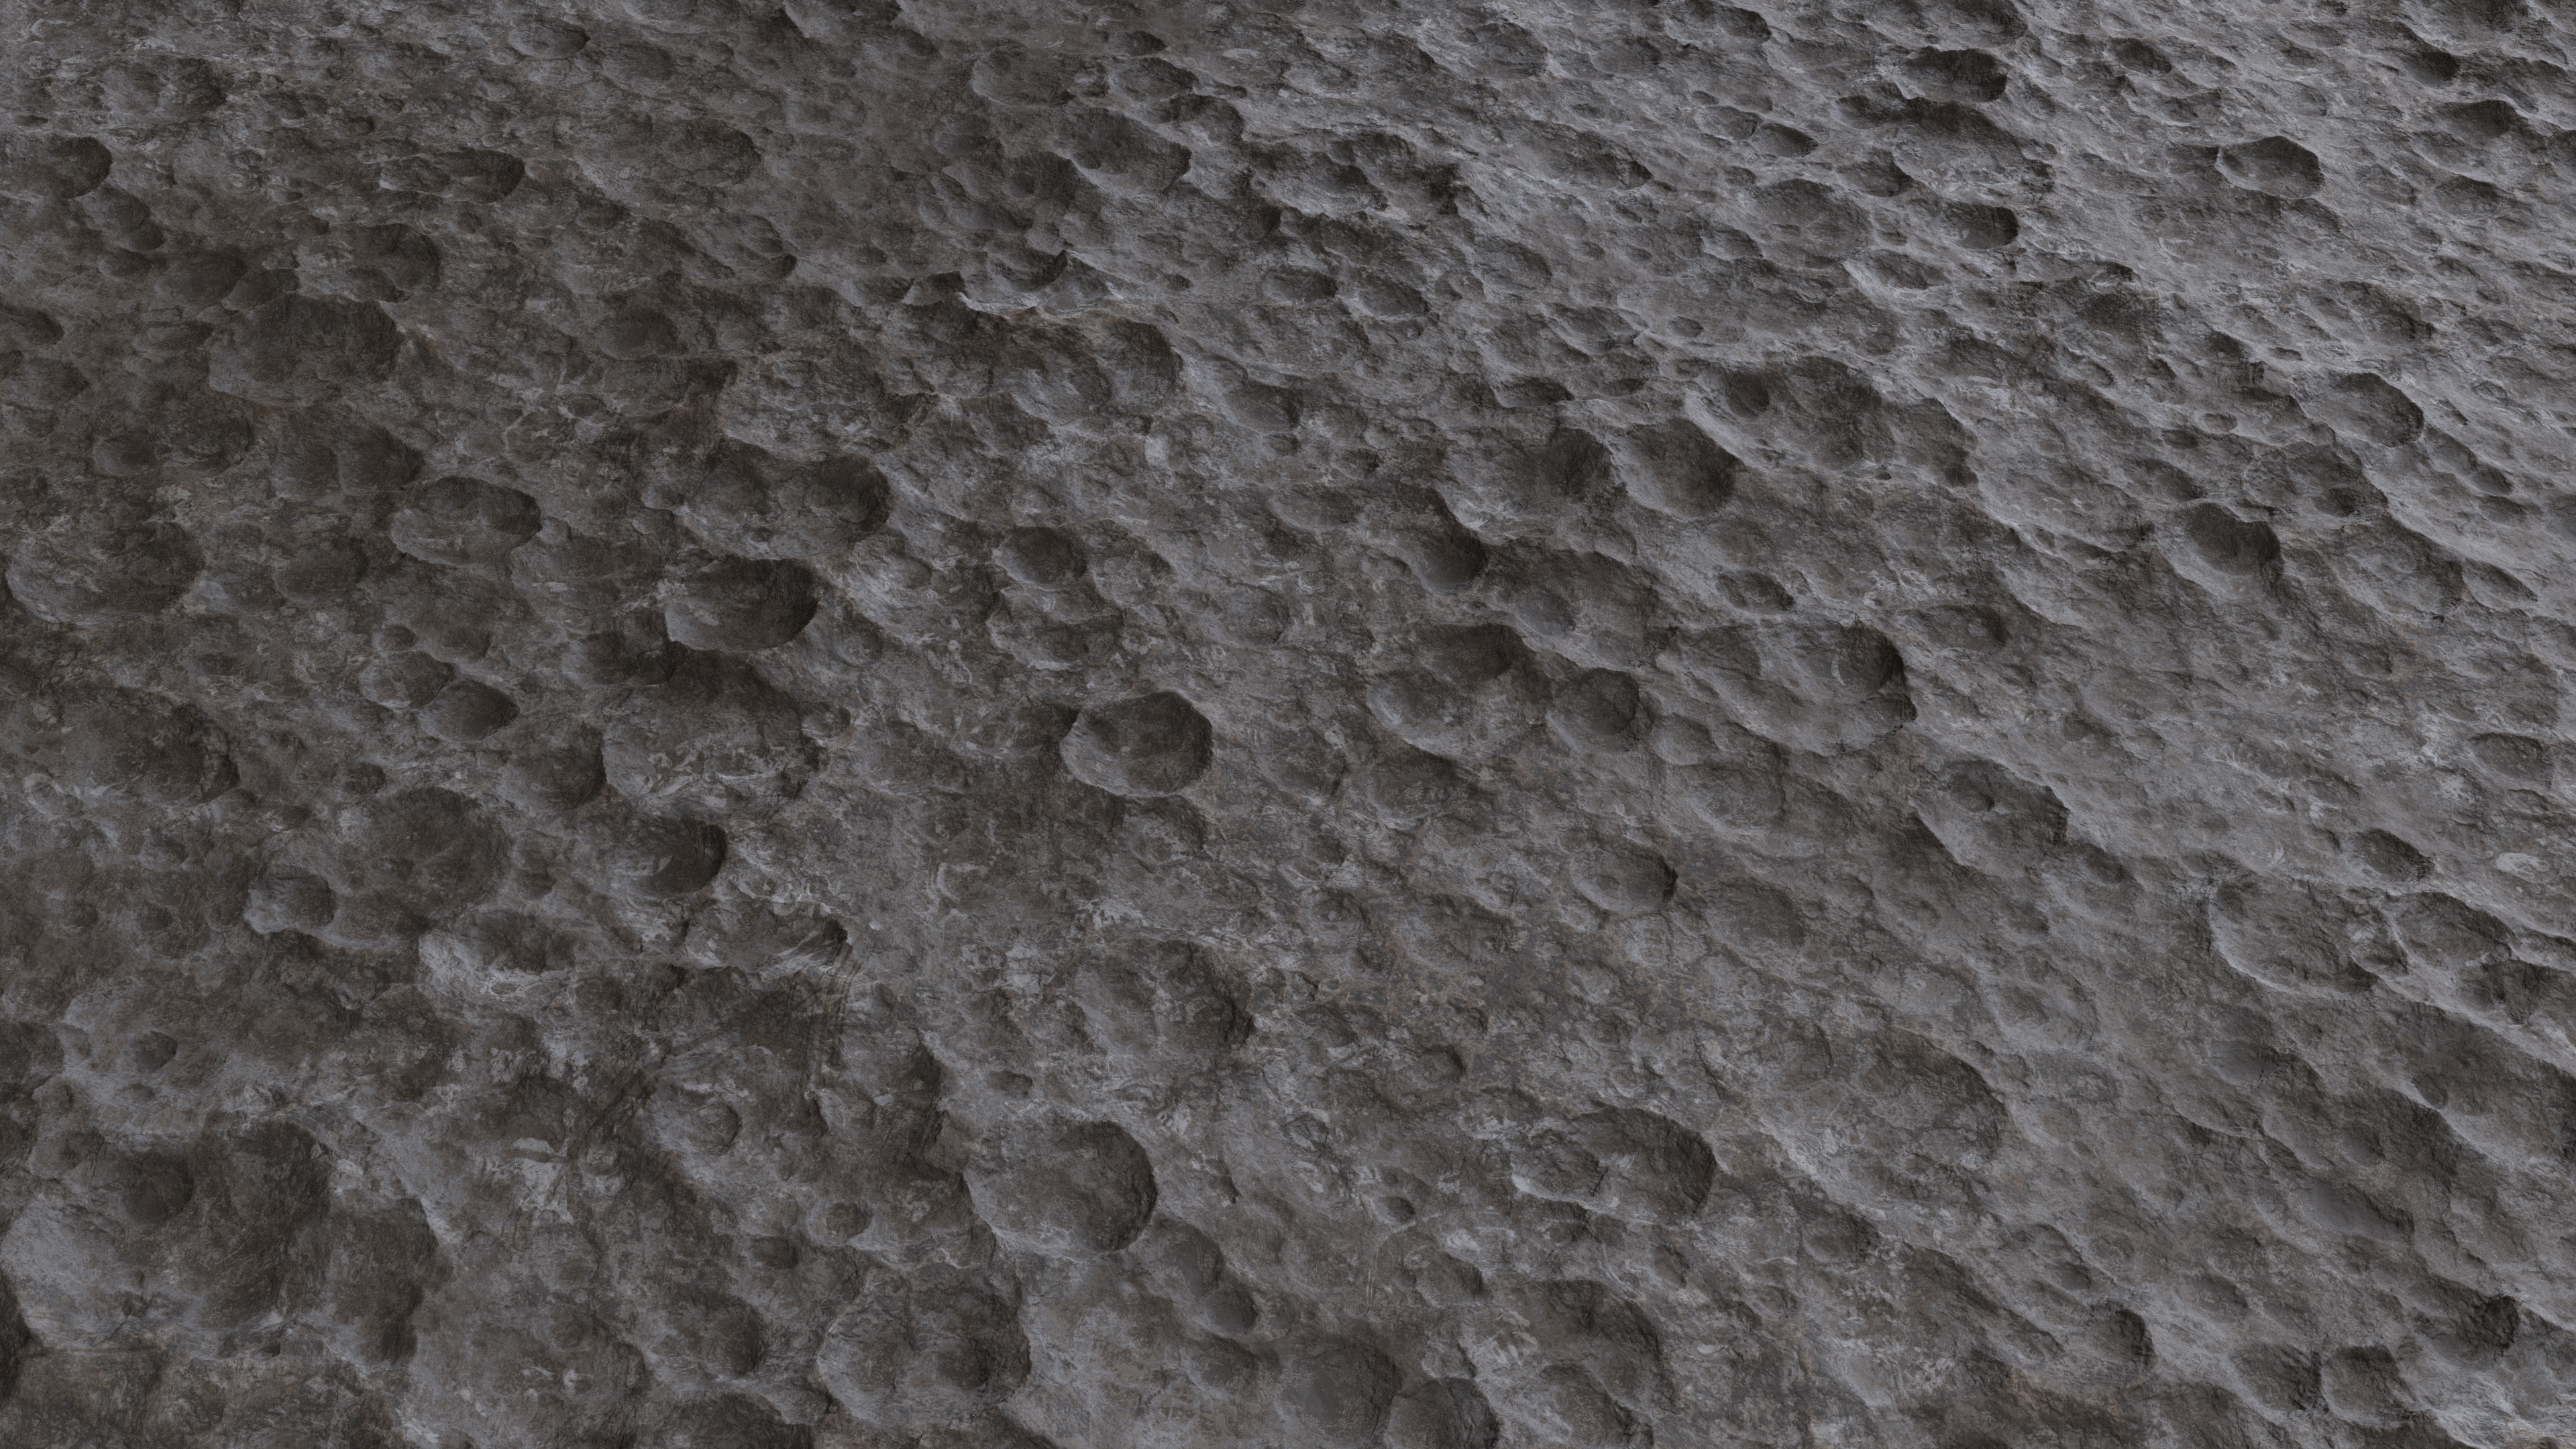 Asteroid Rock Surface - PBR0221